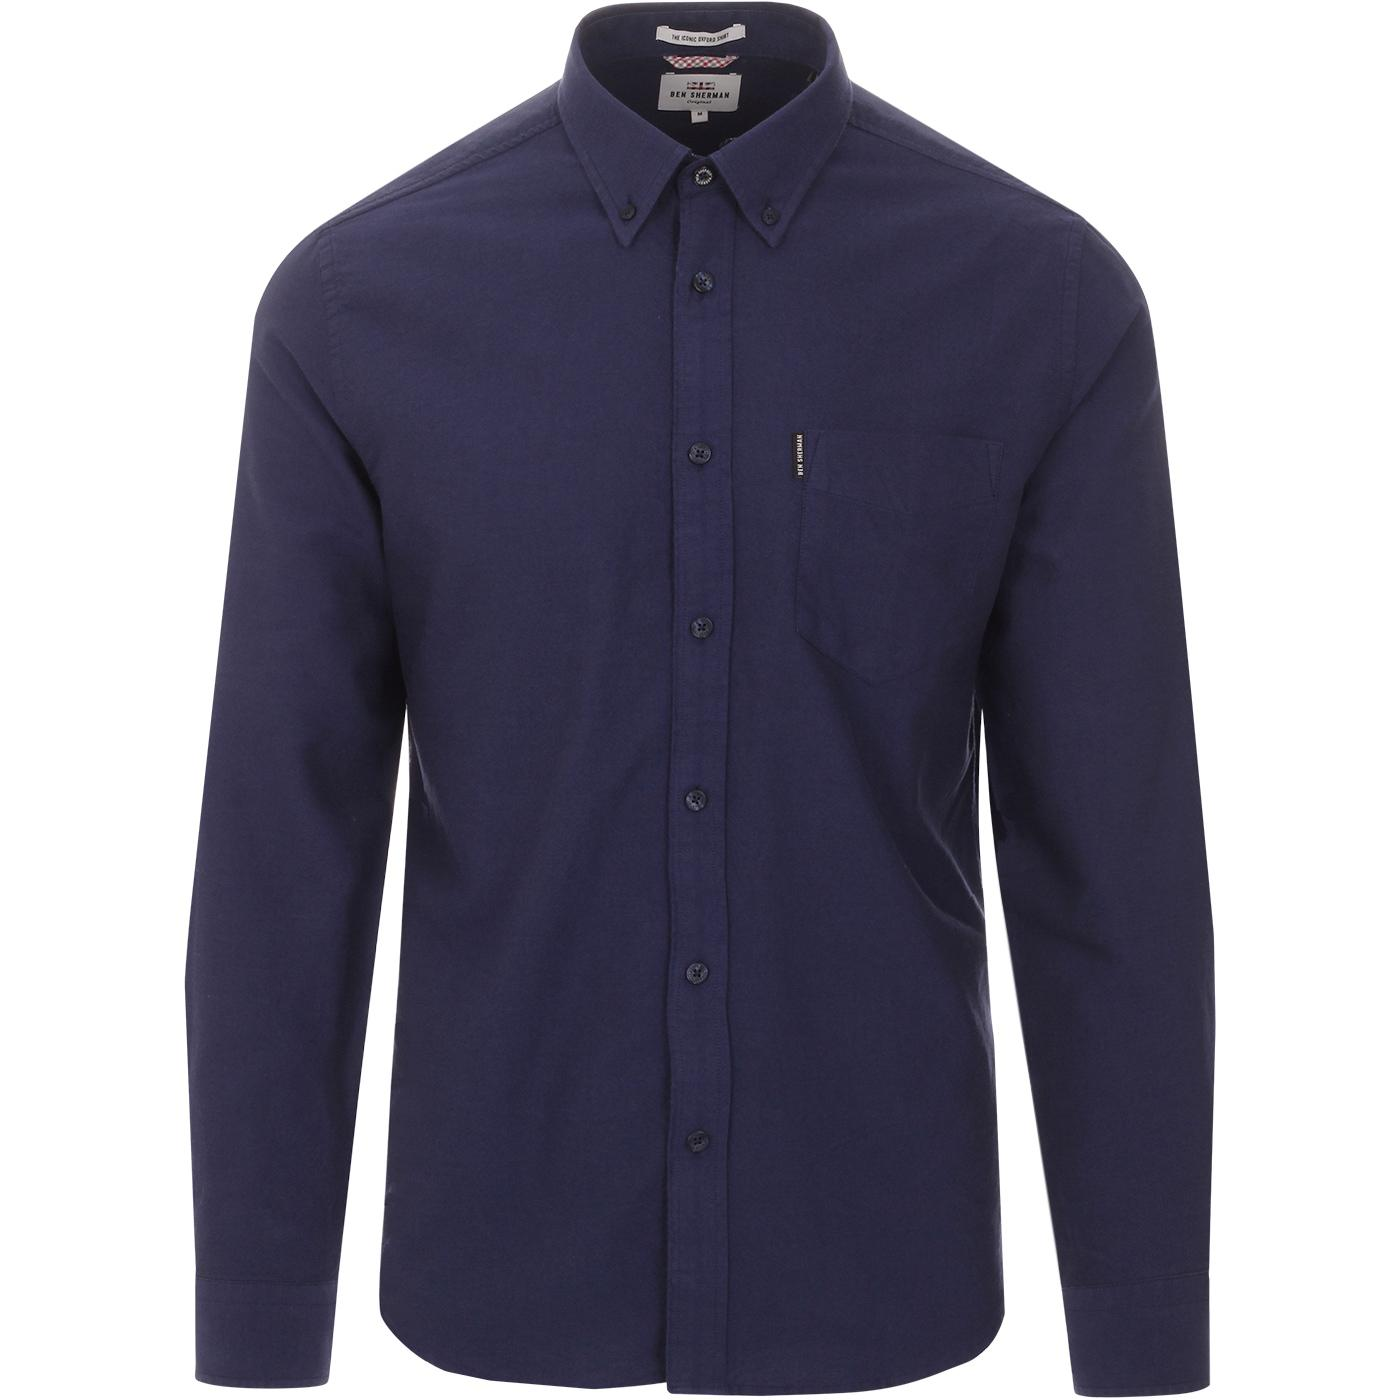 BEN SHERMAN Mod Button Down Oxford Shirt COBALT